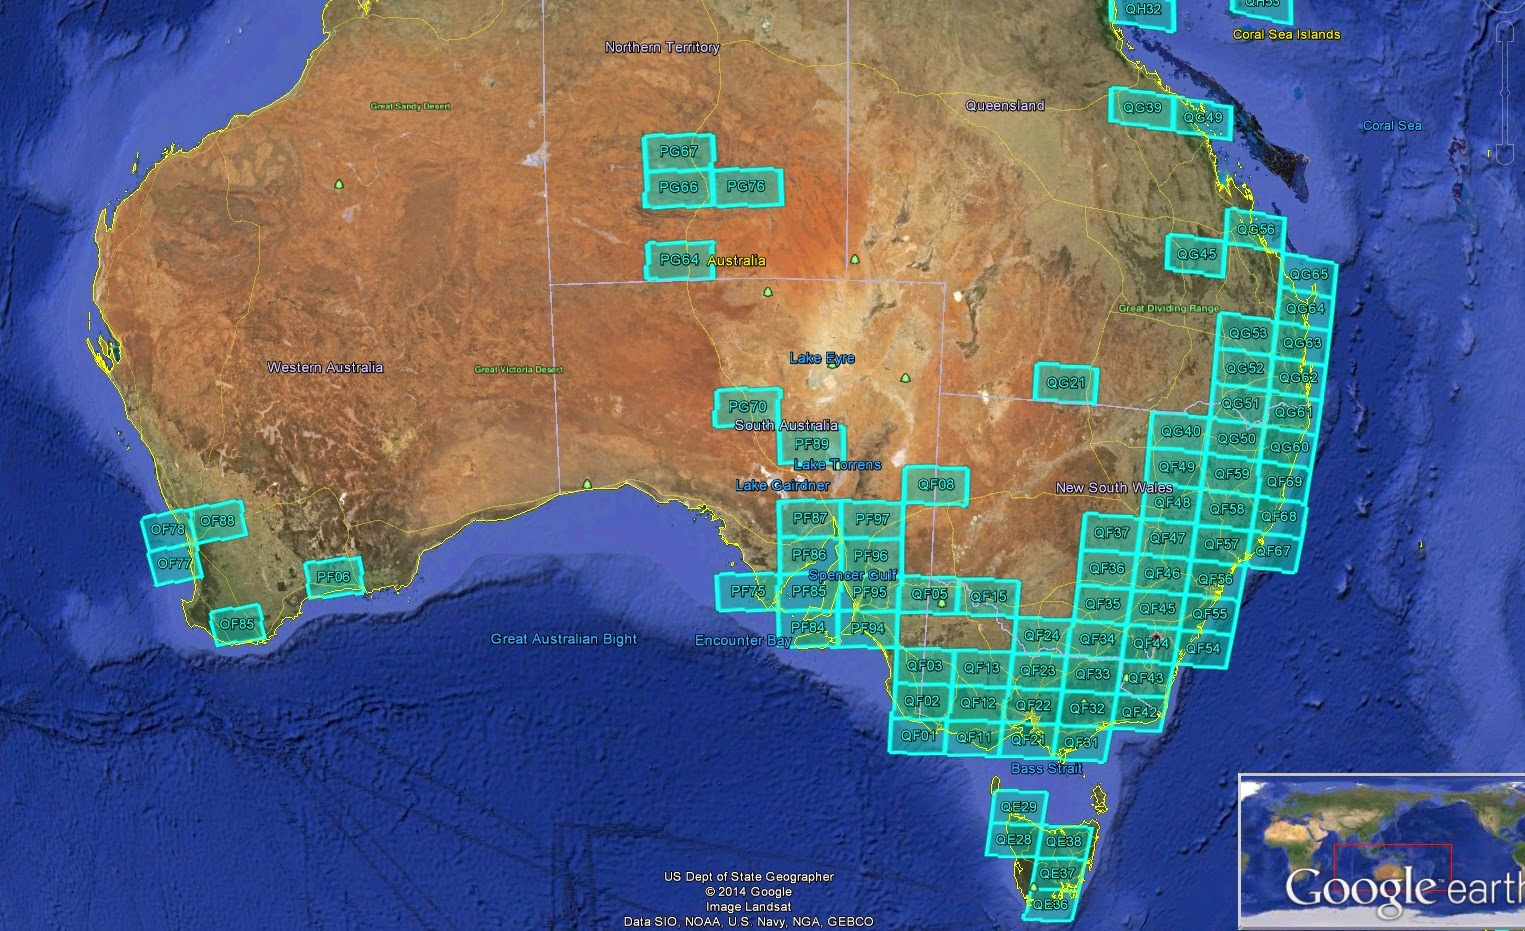 Australia Map Grid.Vk1di S Blog Log4om V1 18 And Grid Square Mapping In Google Earth